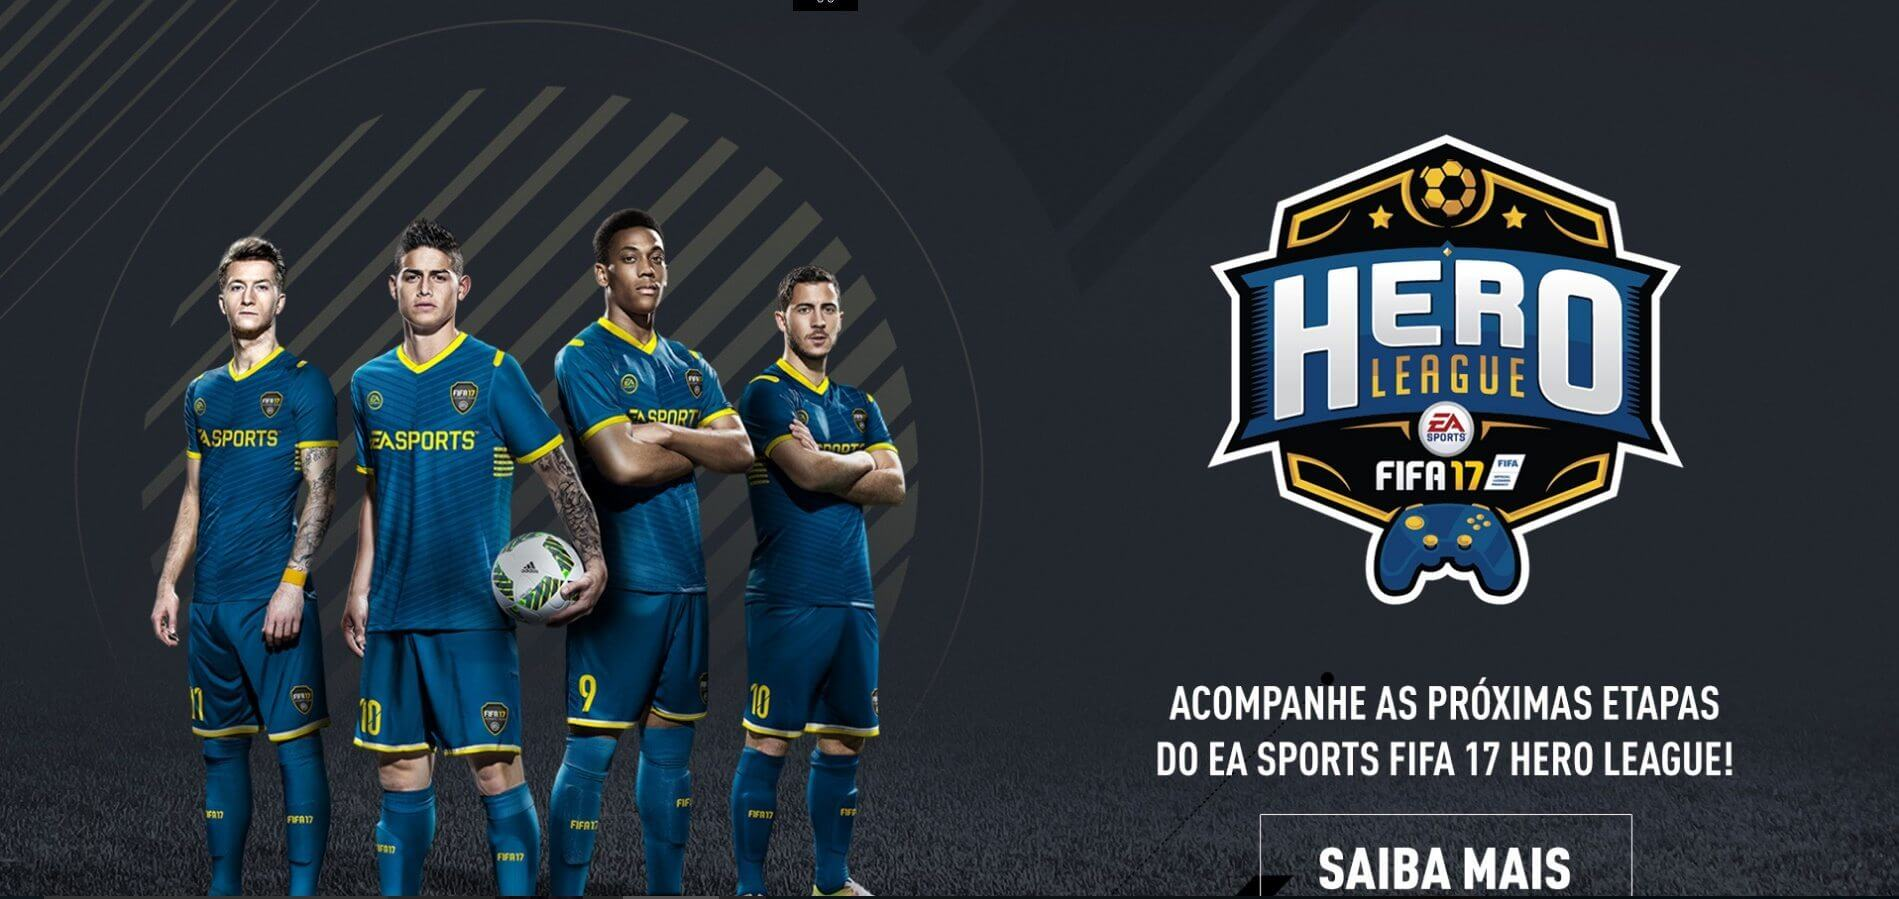 fifa hero - Programação de Sábado: Assista à Final do EA Sports Fifa 17 Hero League